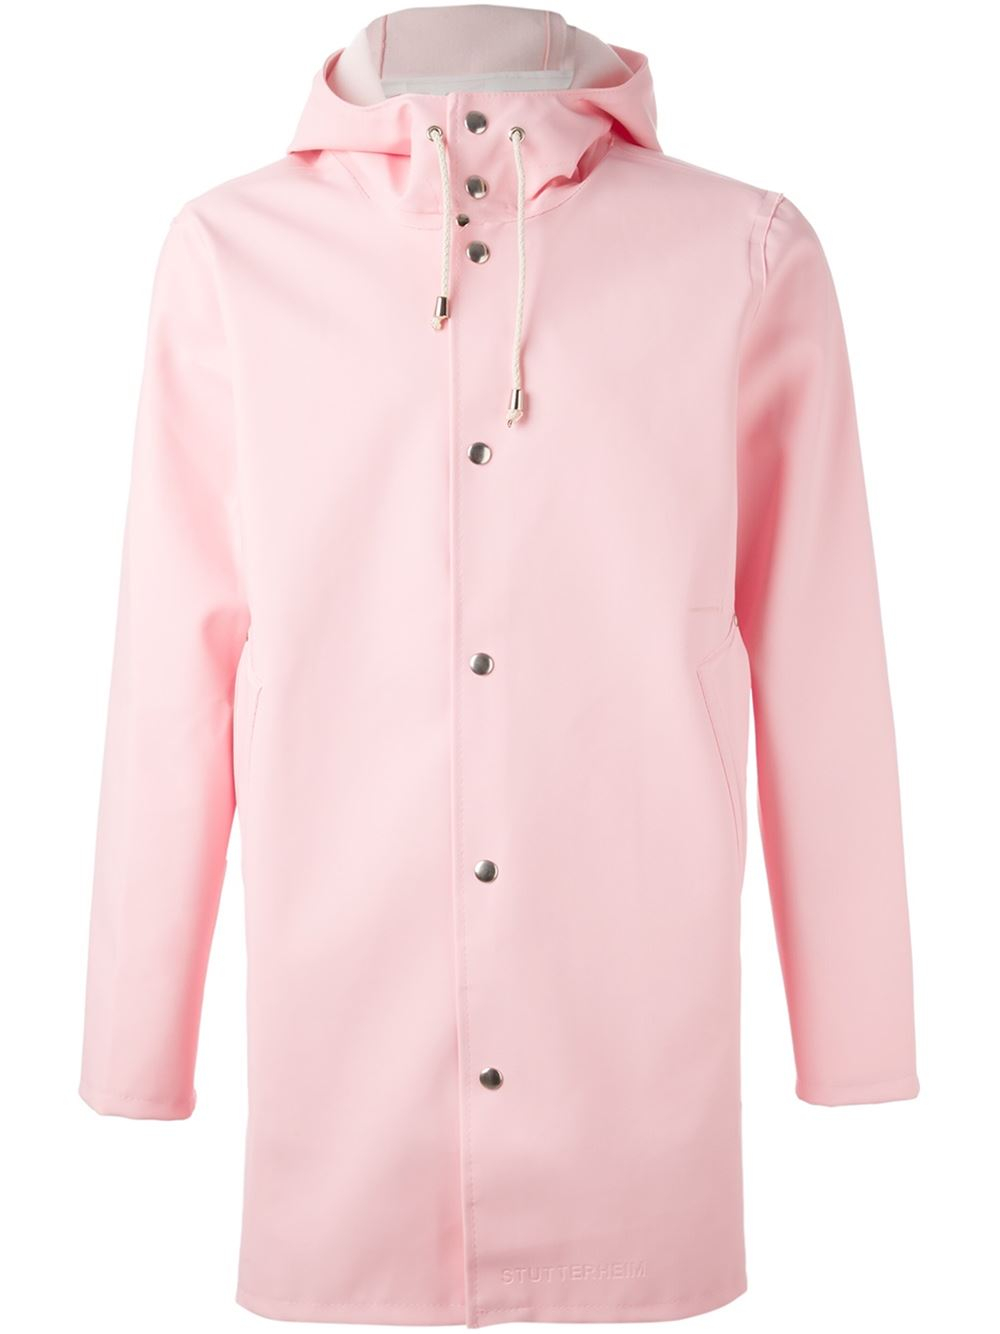 Find great deals on eBay for pink raincoat. Shop with confidence.